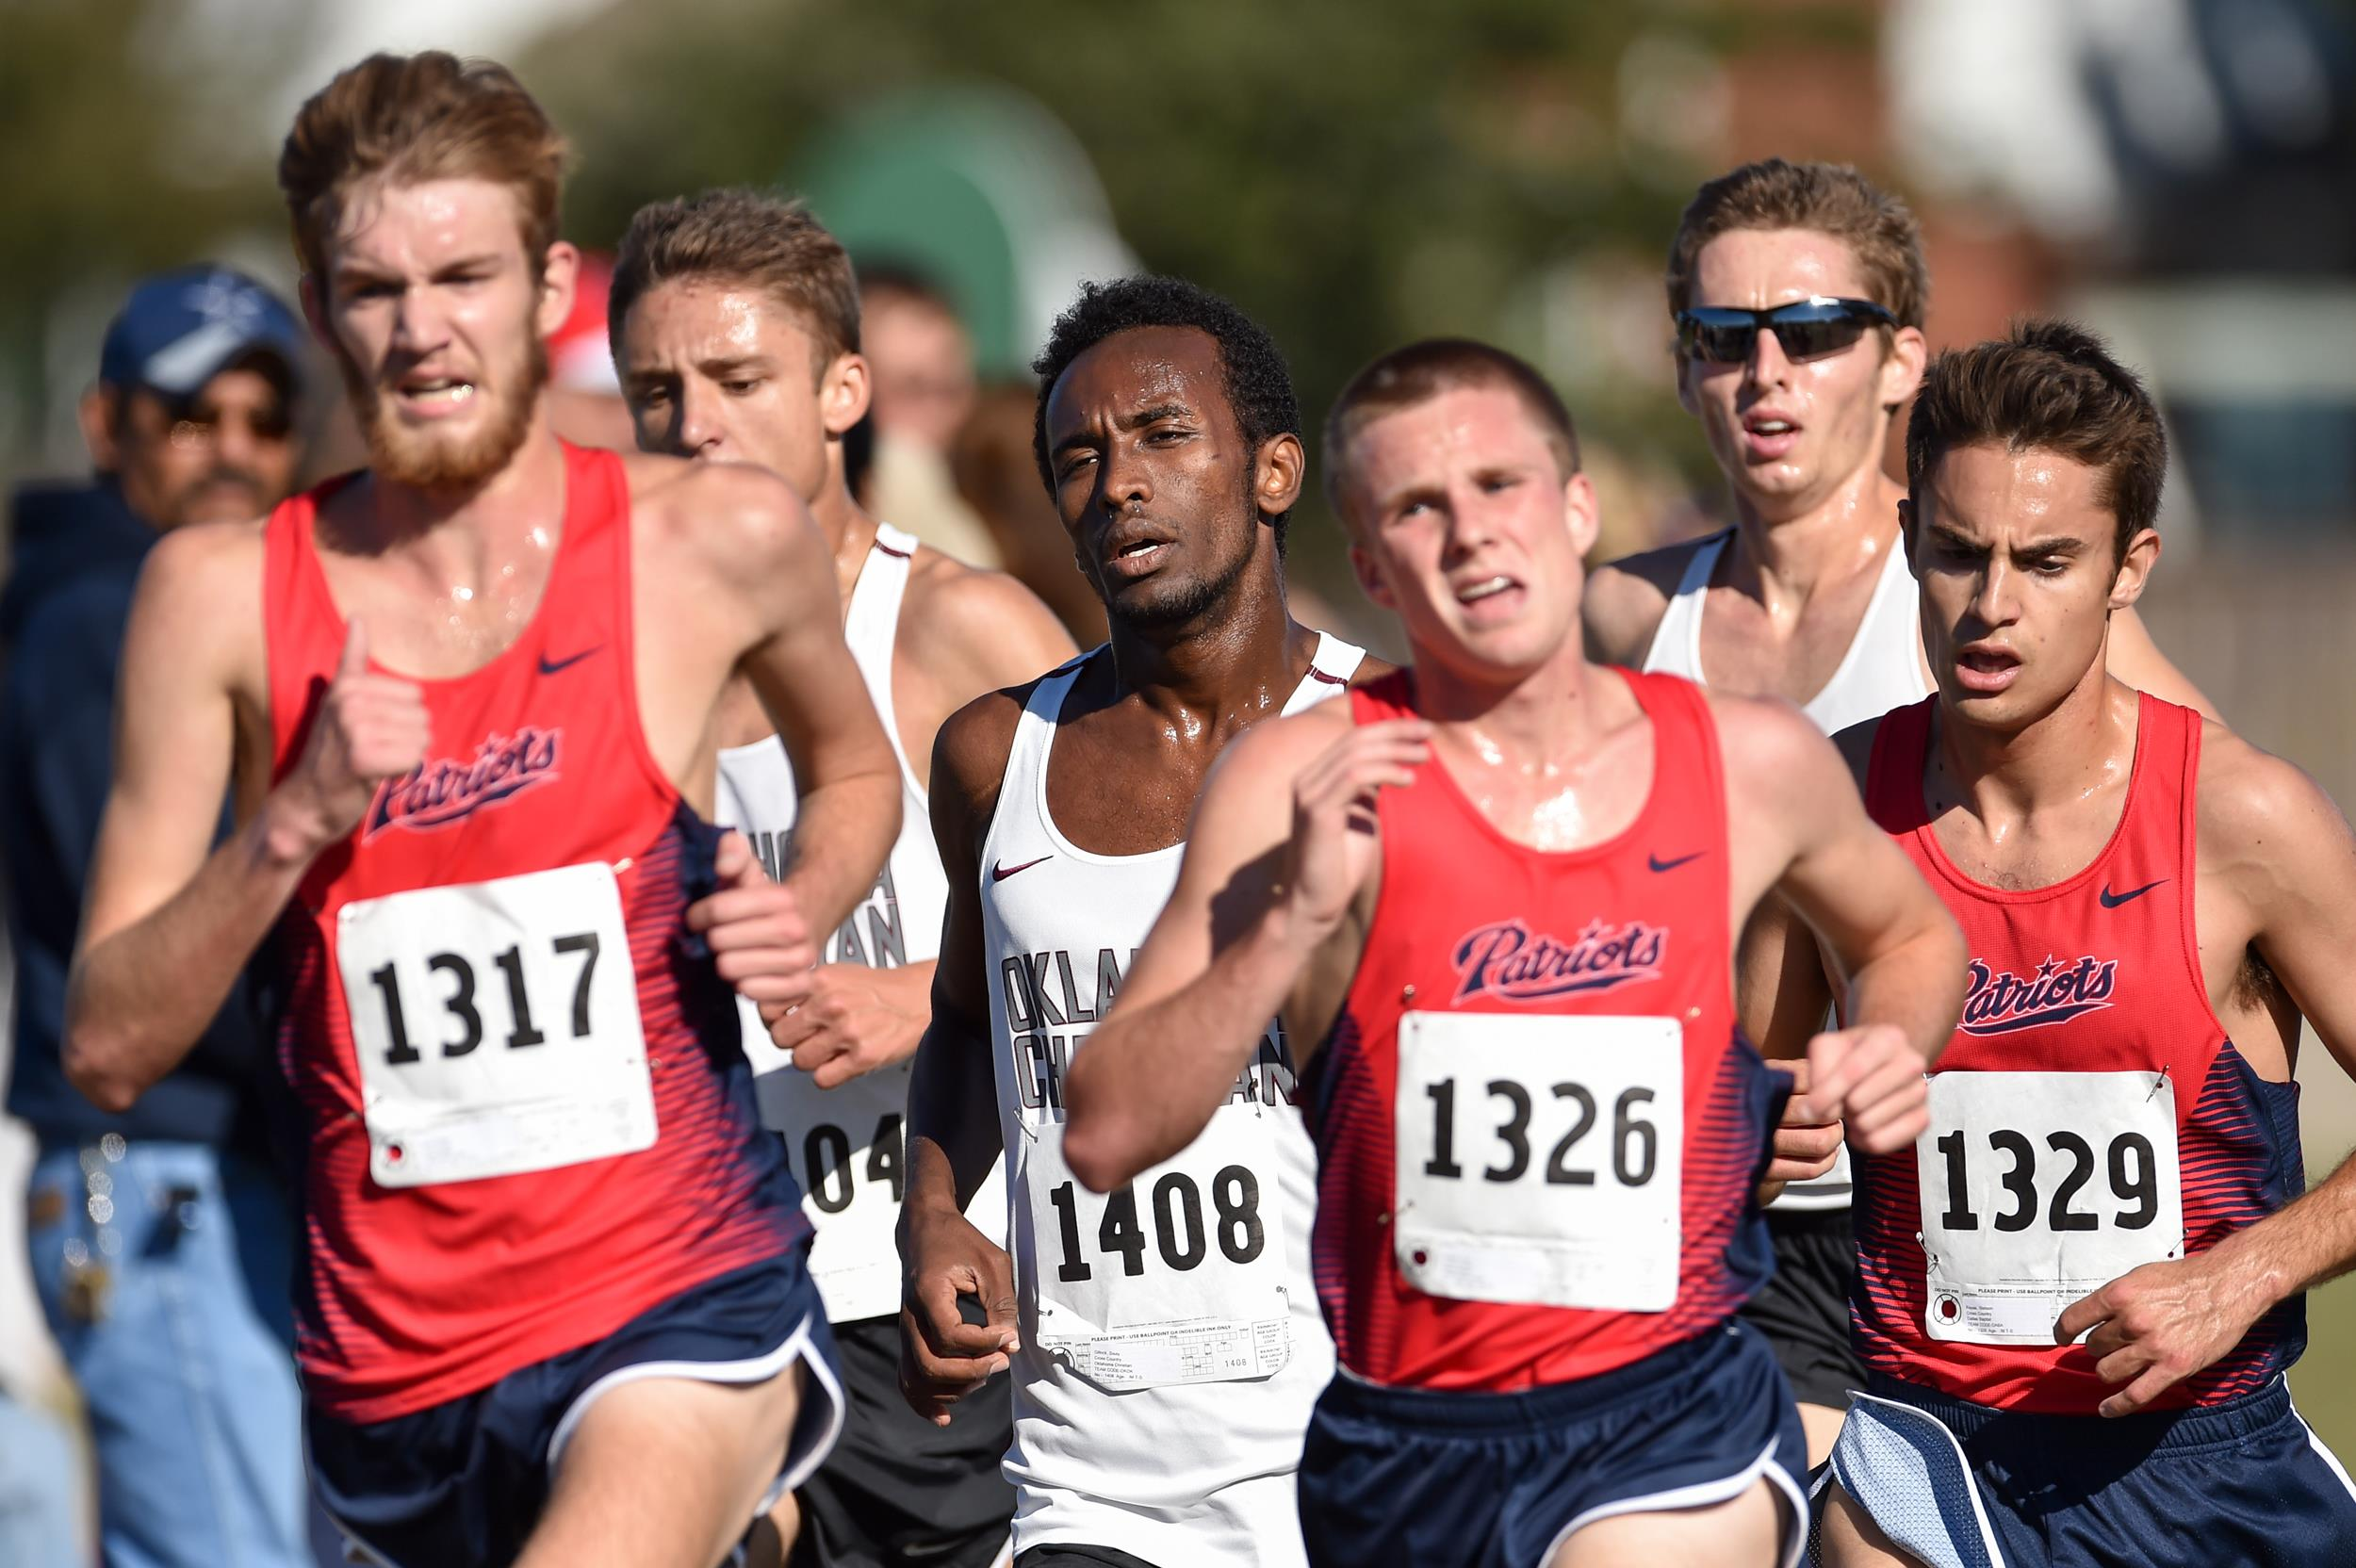 8a0d0e8c2df Cross Country Falls Just Short at South Central Regional ...